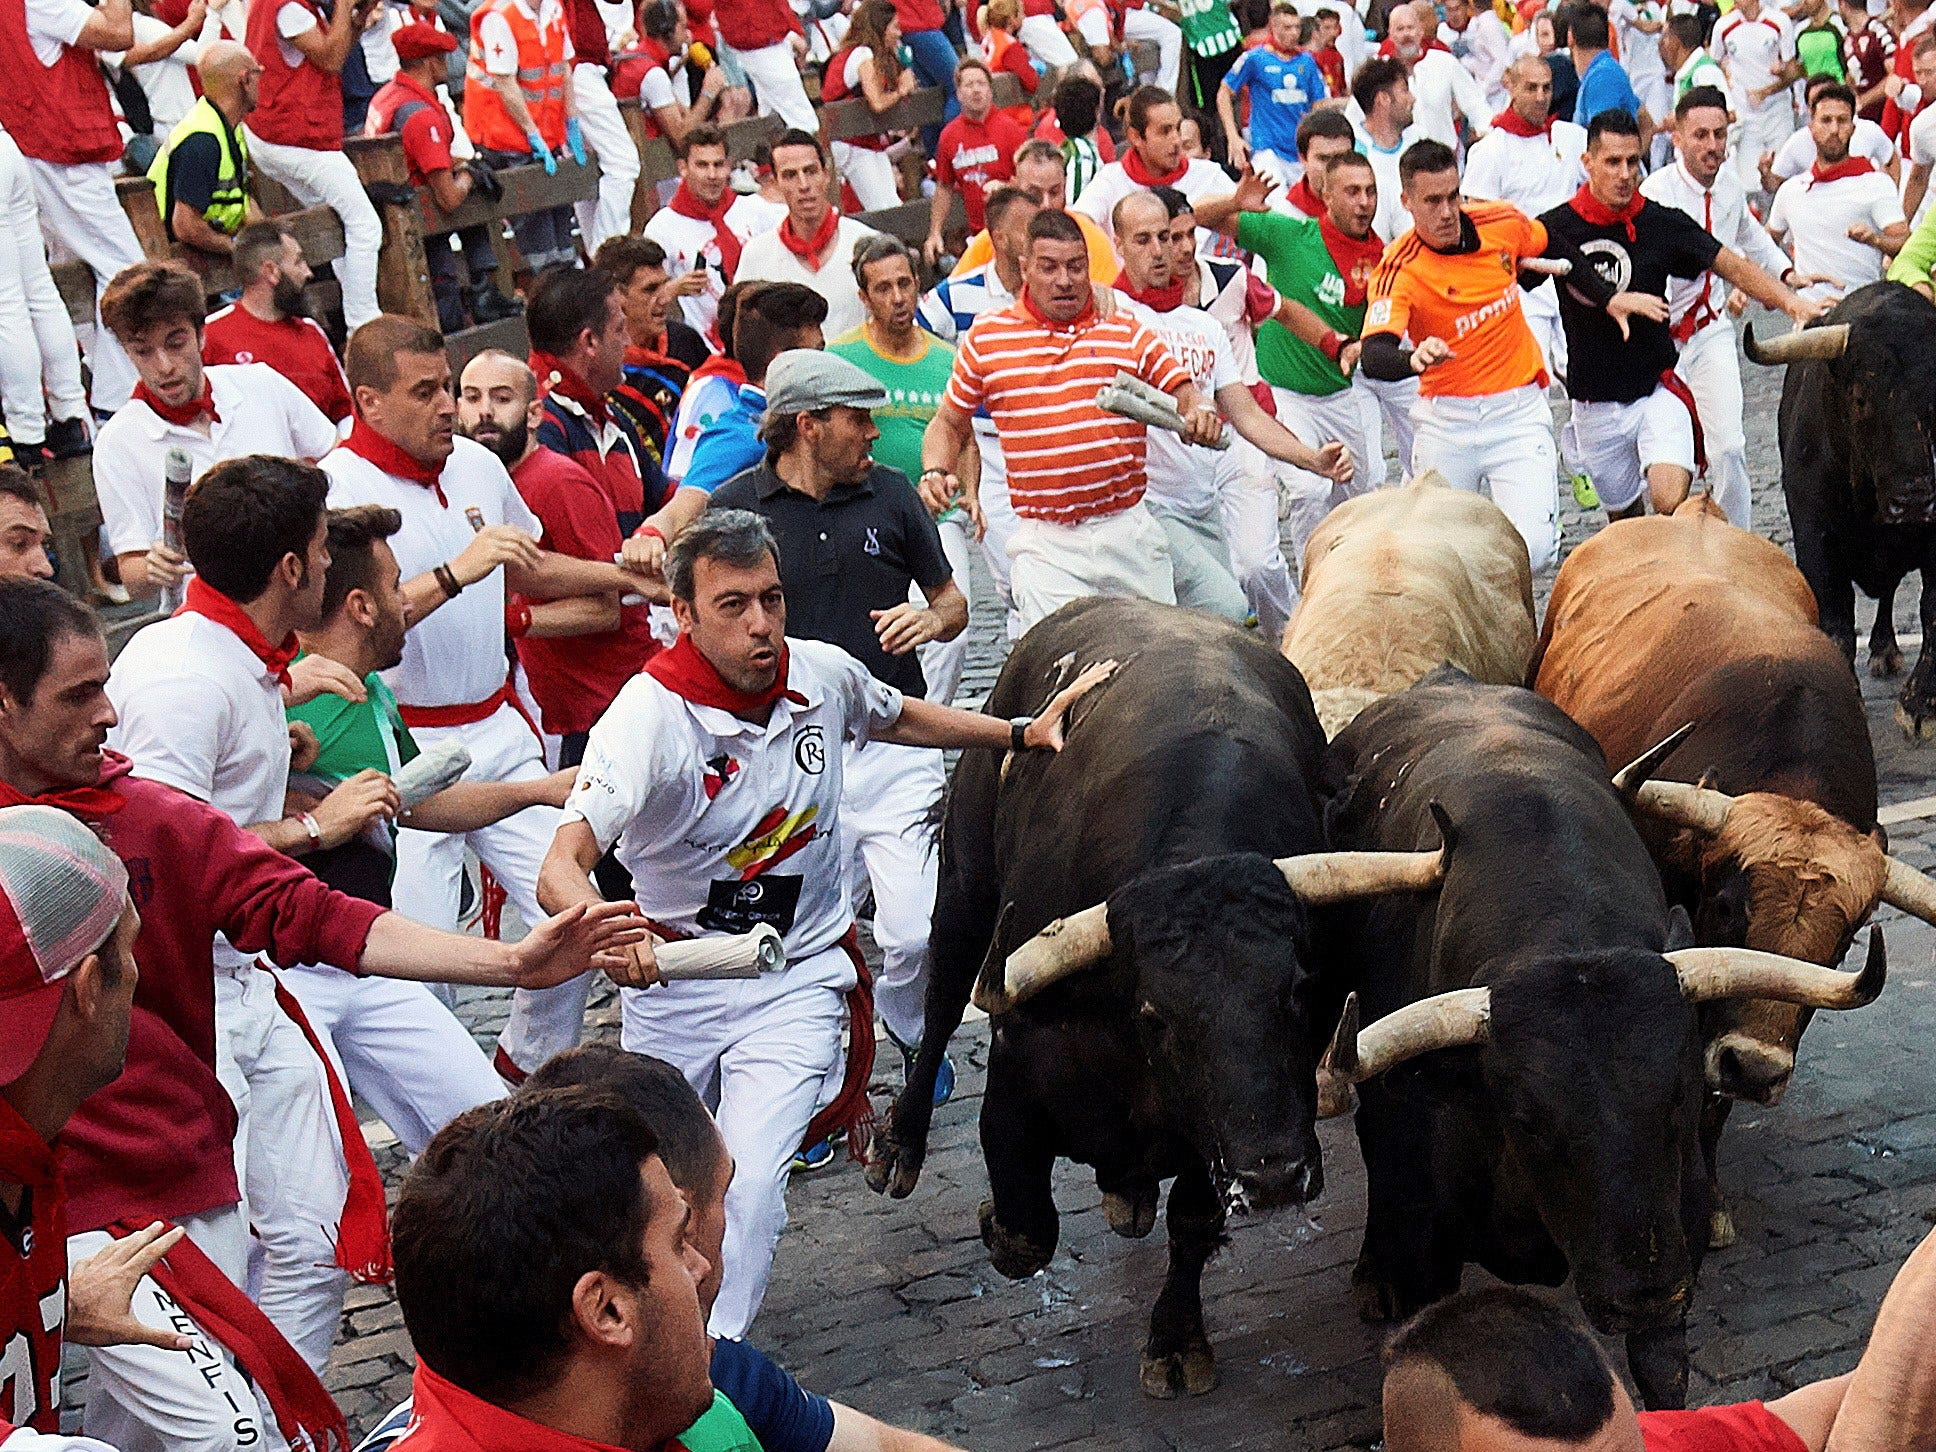 Google has released the top 10 destinations searched most by U.S. travelers in 2018. Spain came in at No. 10 and if the would-be visitors were thinking about running with the bulls in Pamplona, we hope their next search was travel insurance. Click forward to see which other locales made the short list.